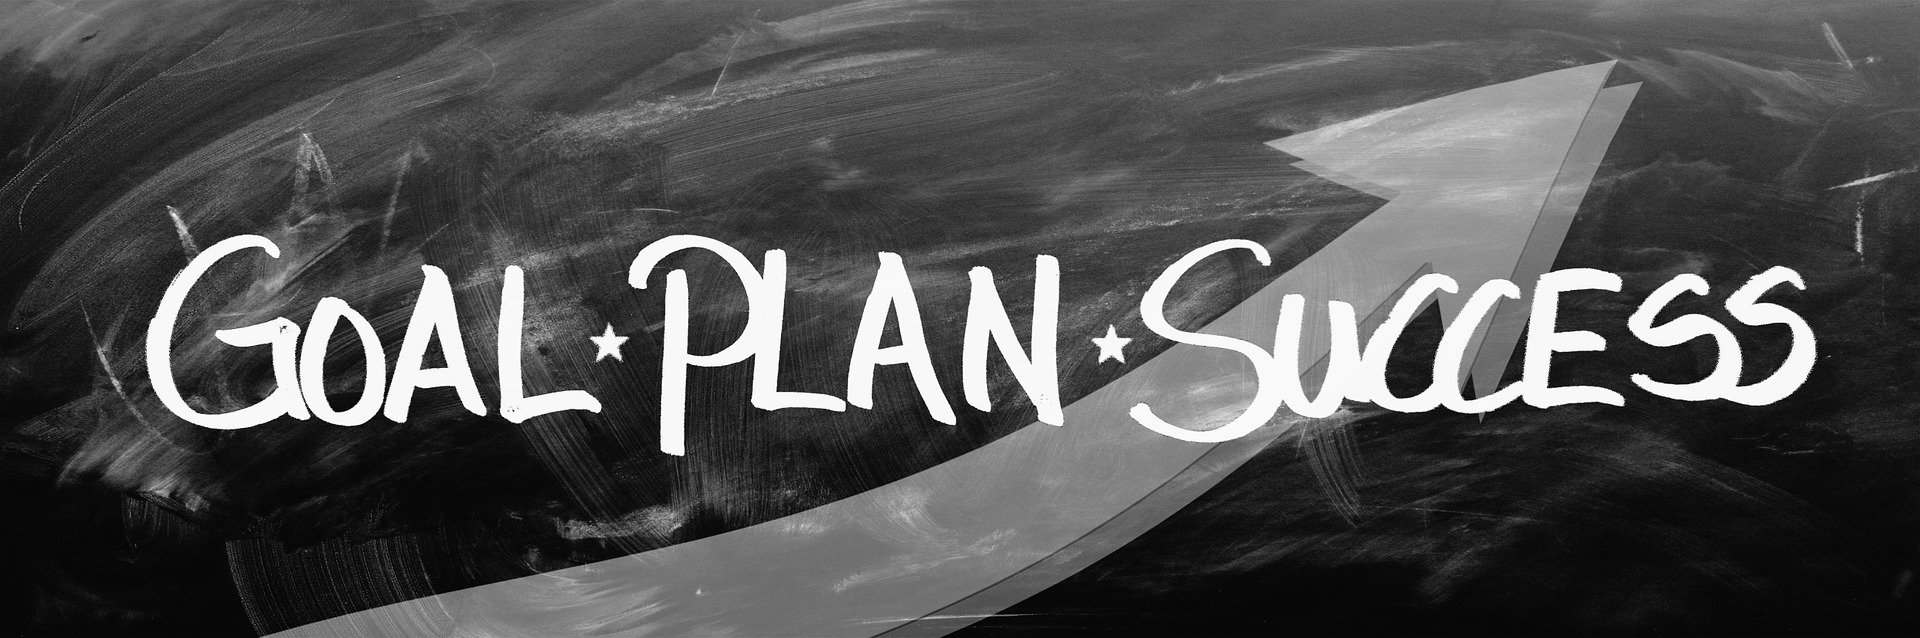 Planning for success image